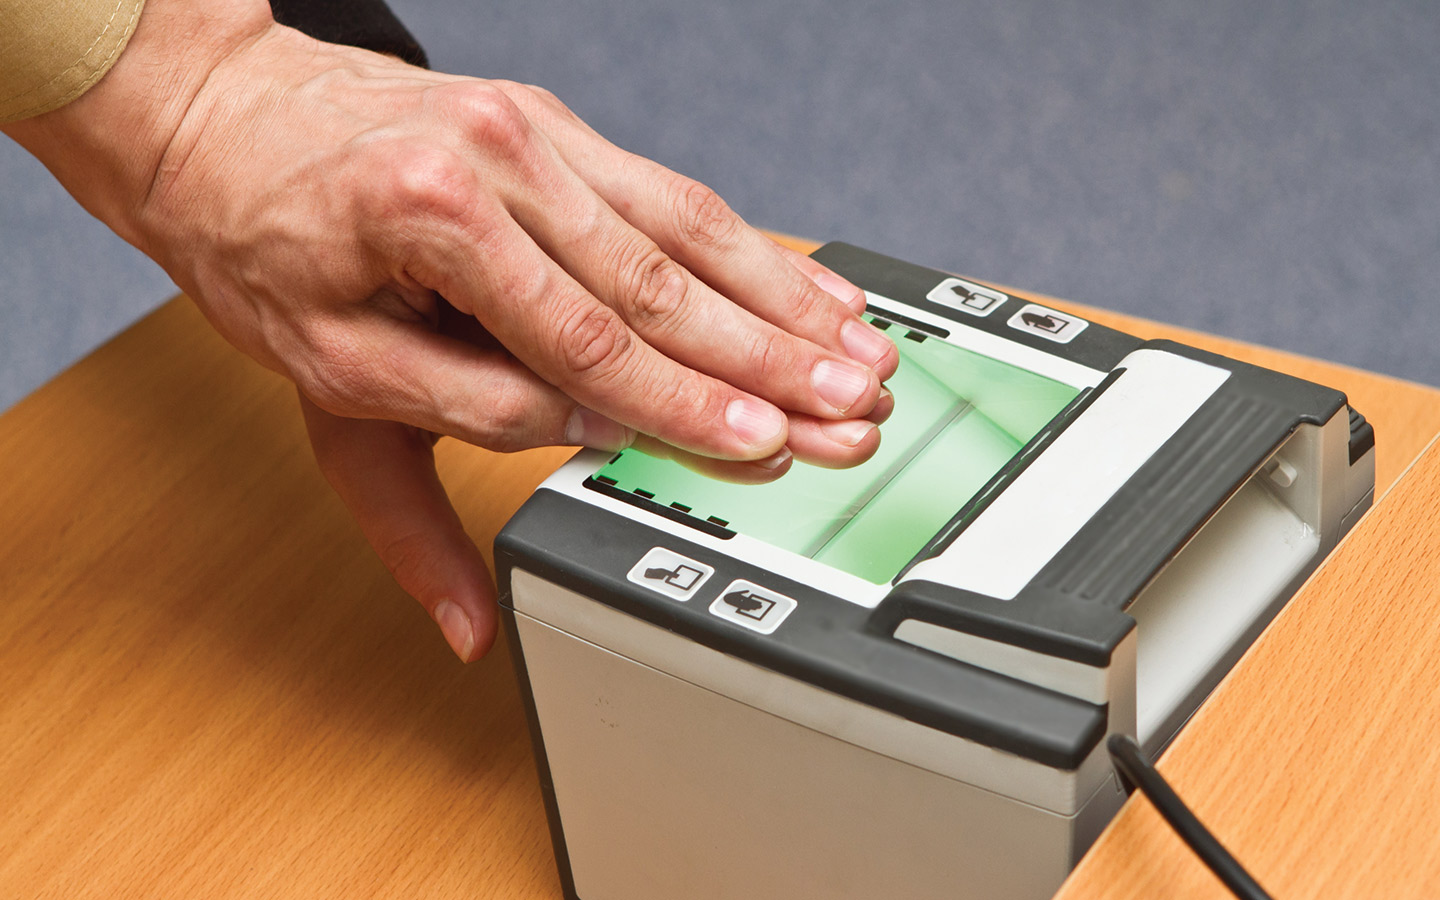 Fingerprint scanning for Emirates ID replacement